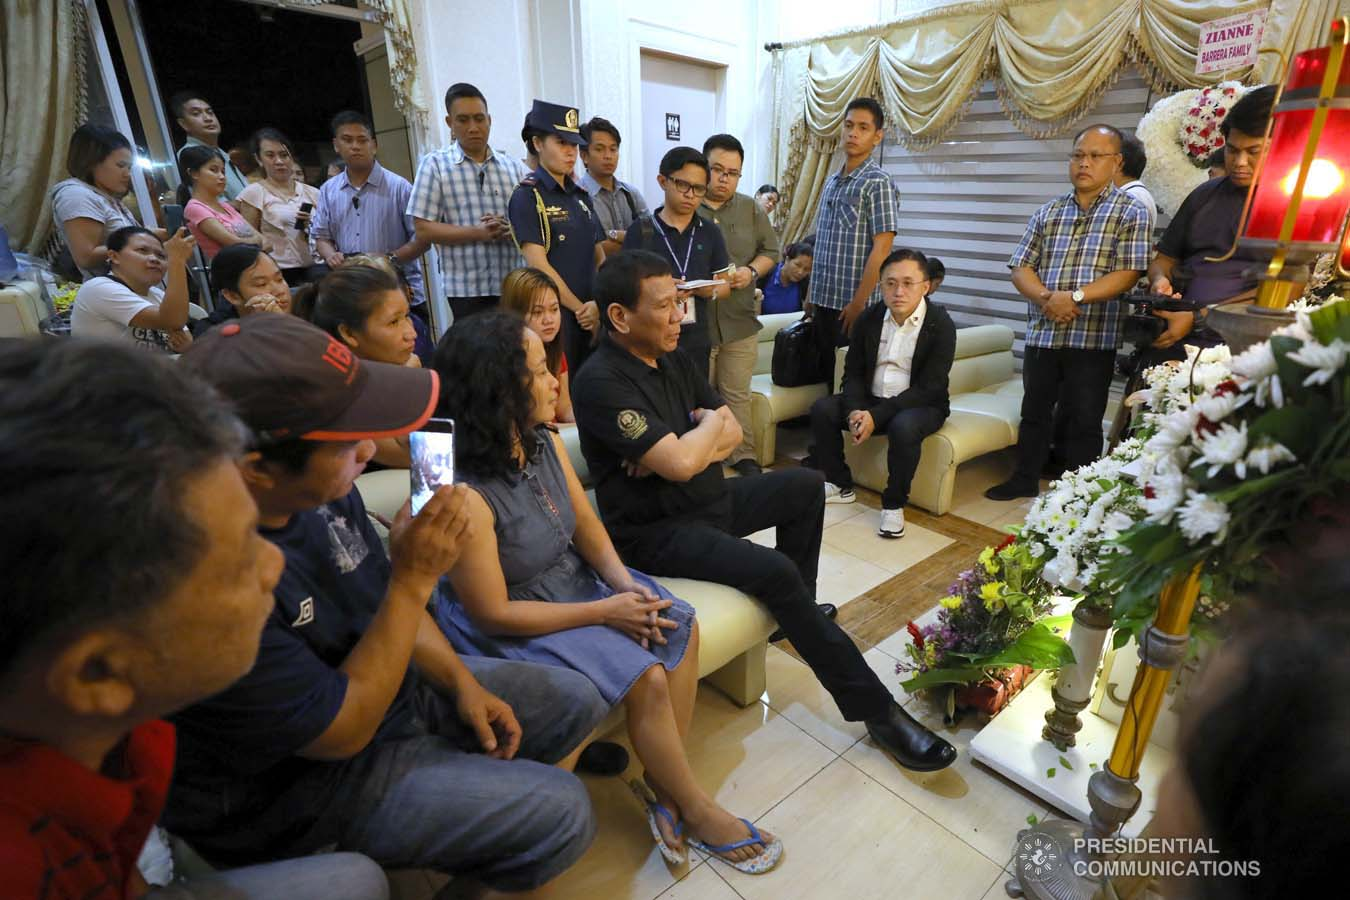 President Rodrigo Roa Duterte condoles with the family of Zianne Paraiso as he visits the wake at the Cosmopolitan Funeral Homes in Davao City on September 21, 2019. KARL NORMAN ALONZO/PRESIDENTIAL PHOTO